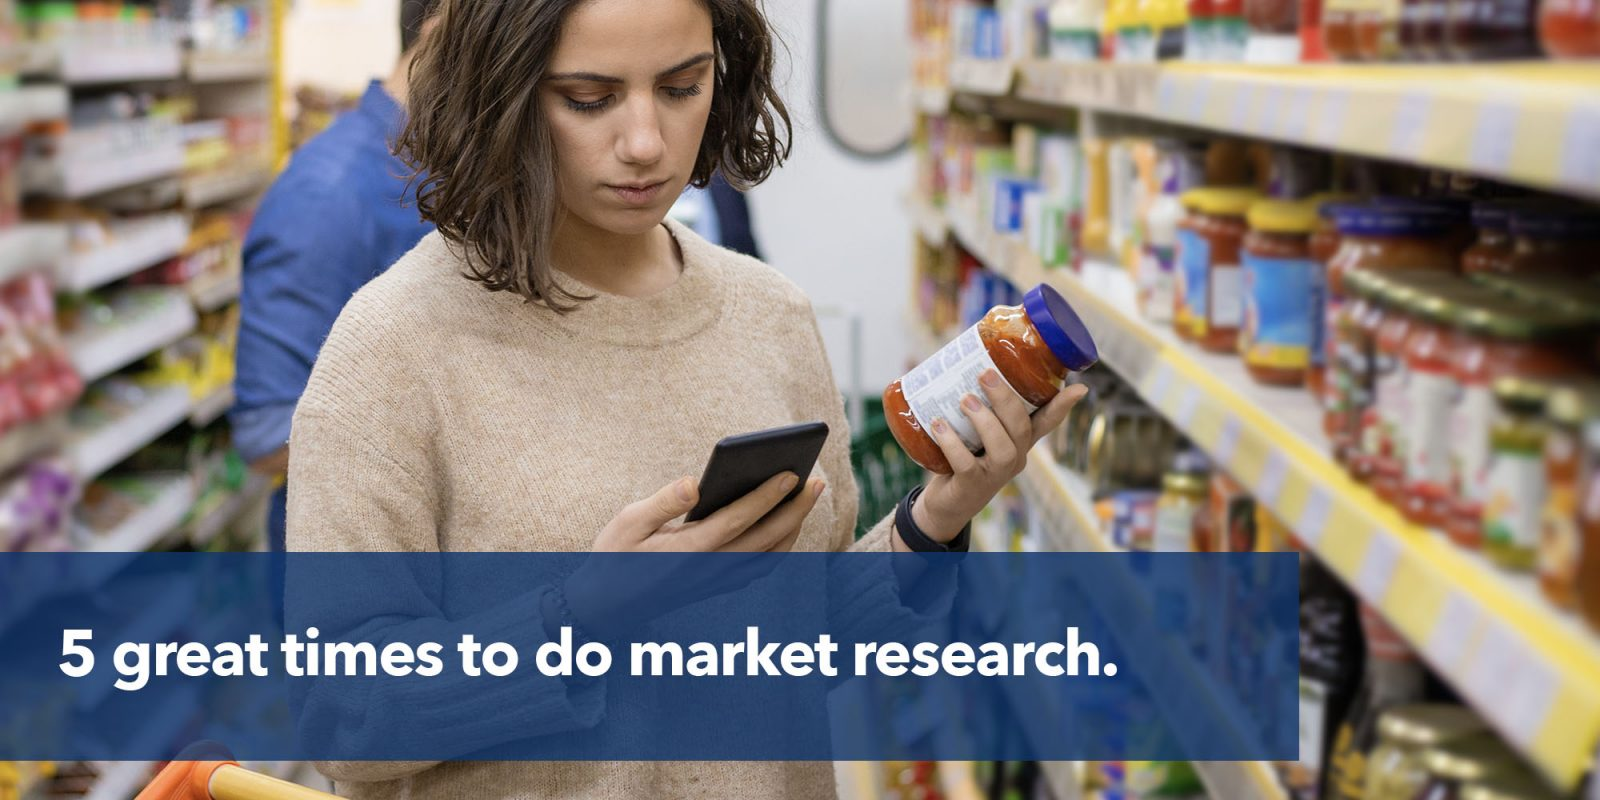 5 great times to do market research.